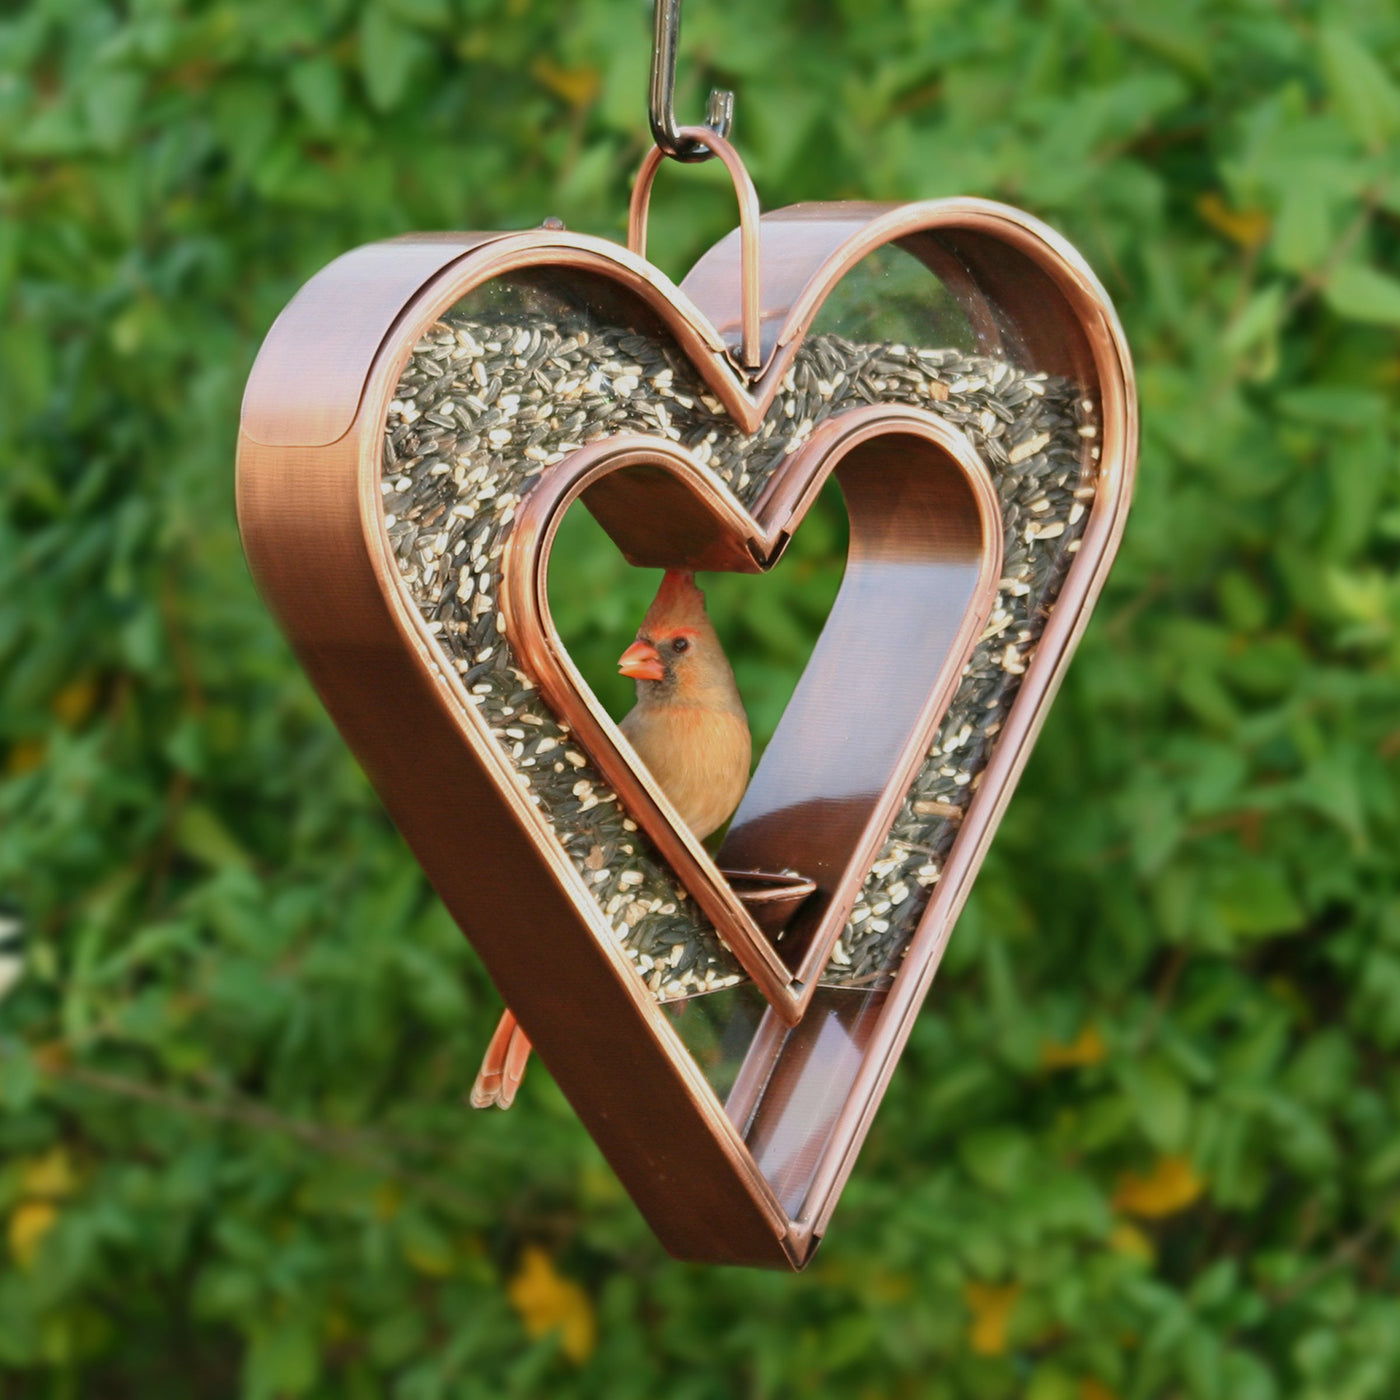 Steel Heart Shaped Bird Feeder with a Copper Finish in a Garden with a Cardinal Feeding